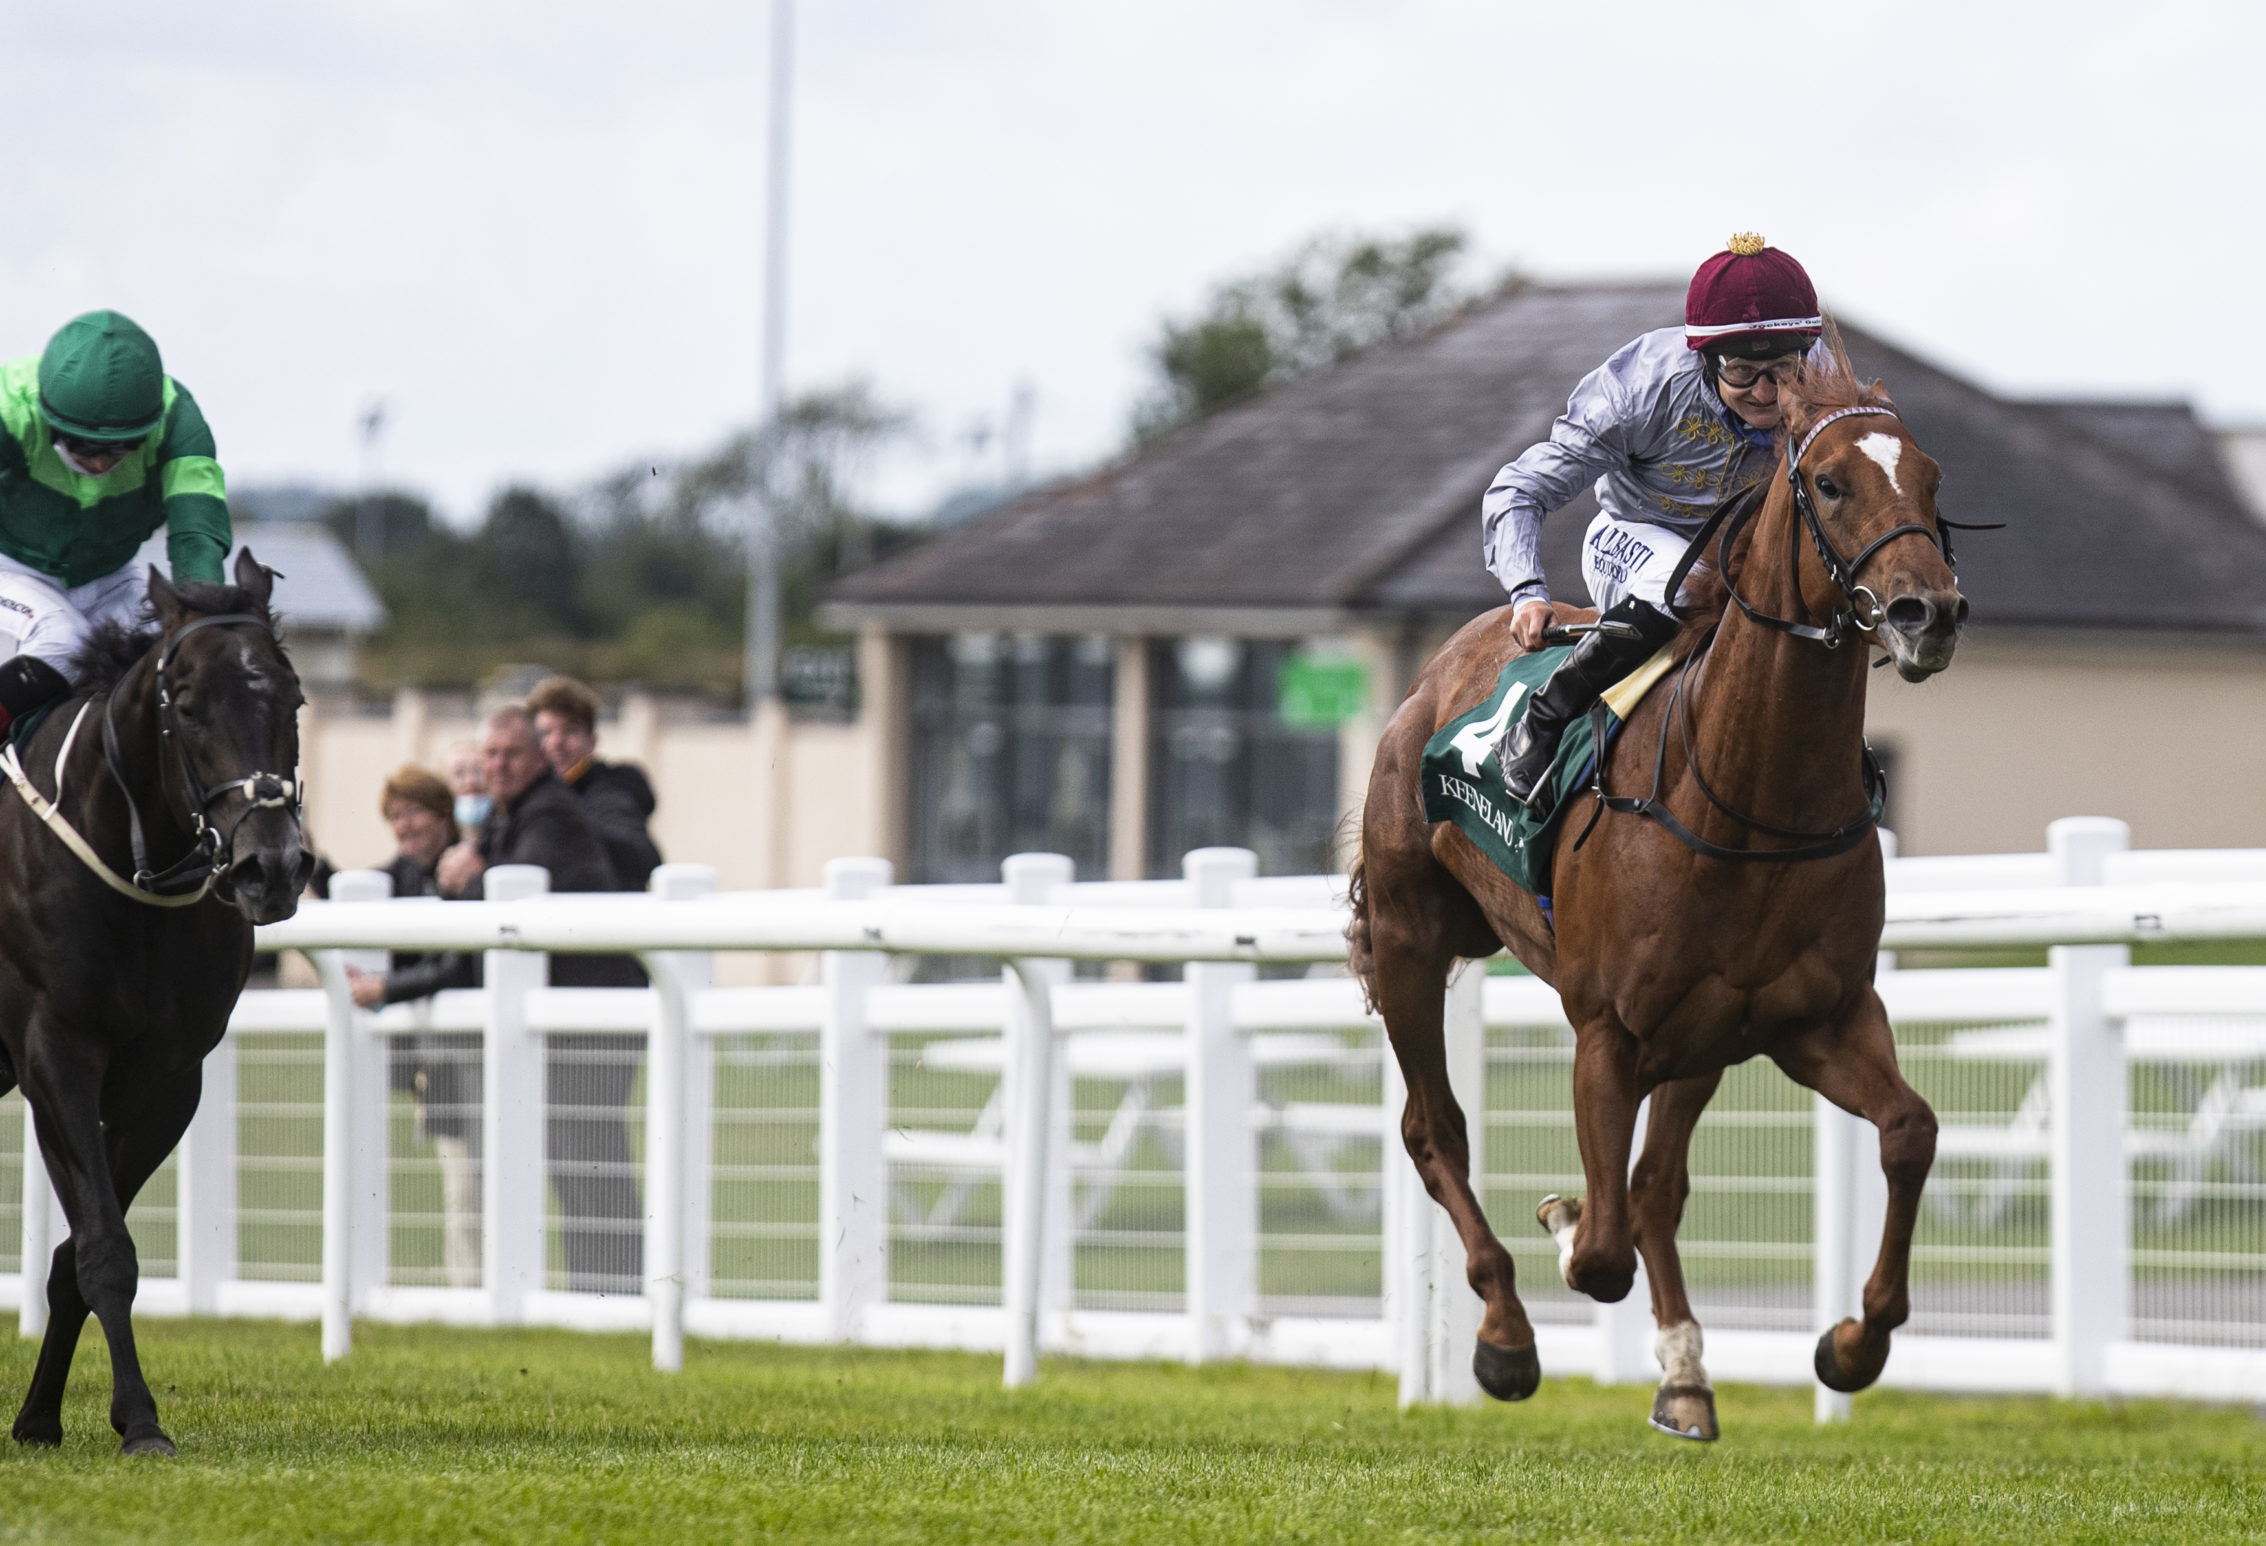 Al Shaqab Racing EBRO RIVER Shines at Highest Level with Gr1 Victory at the Curragh